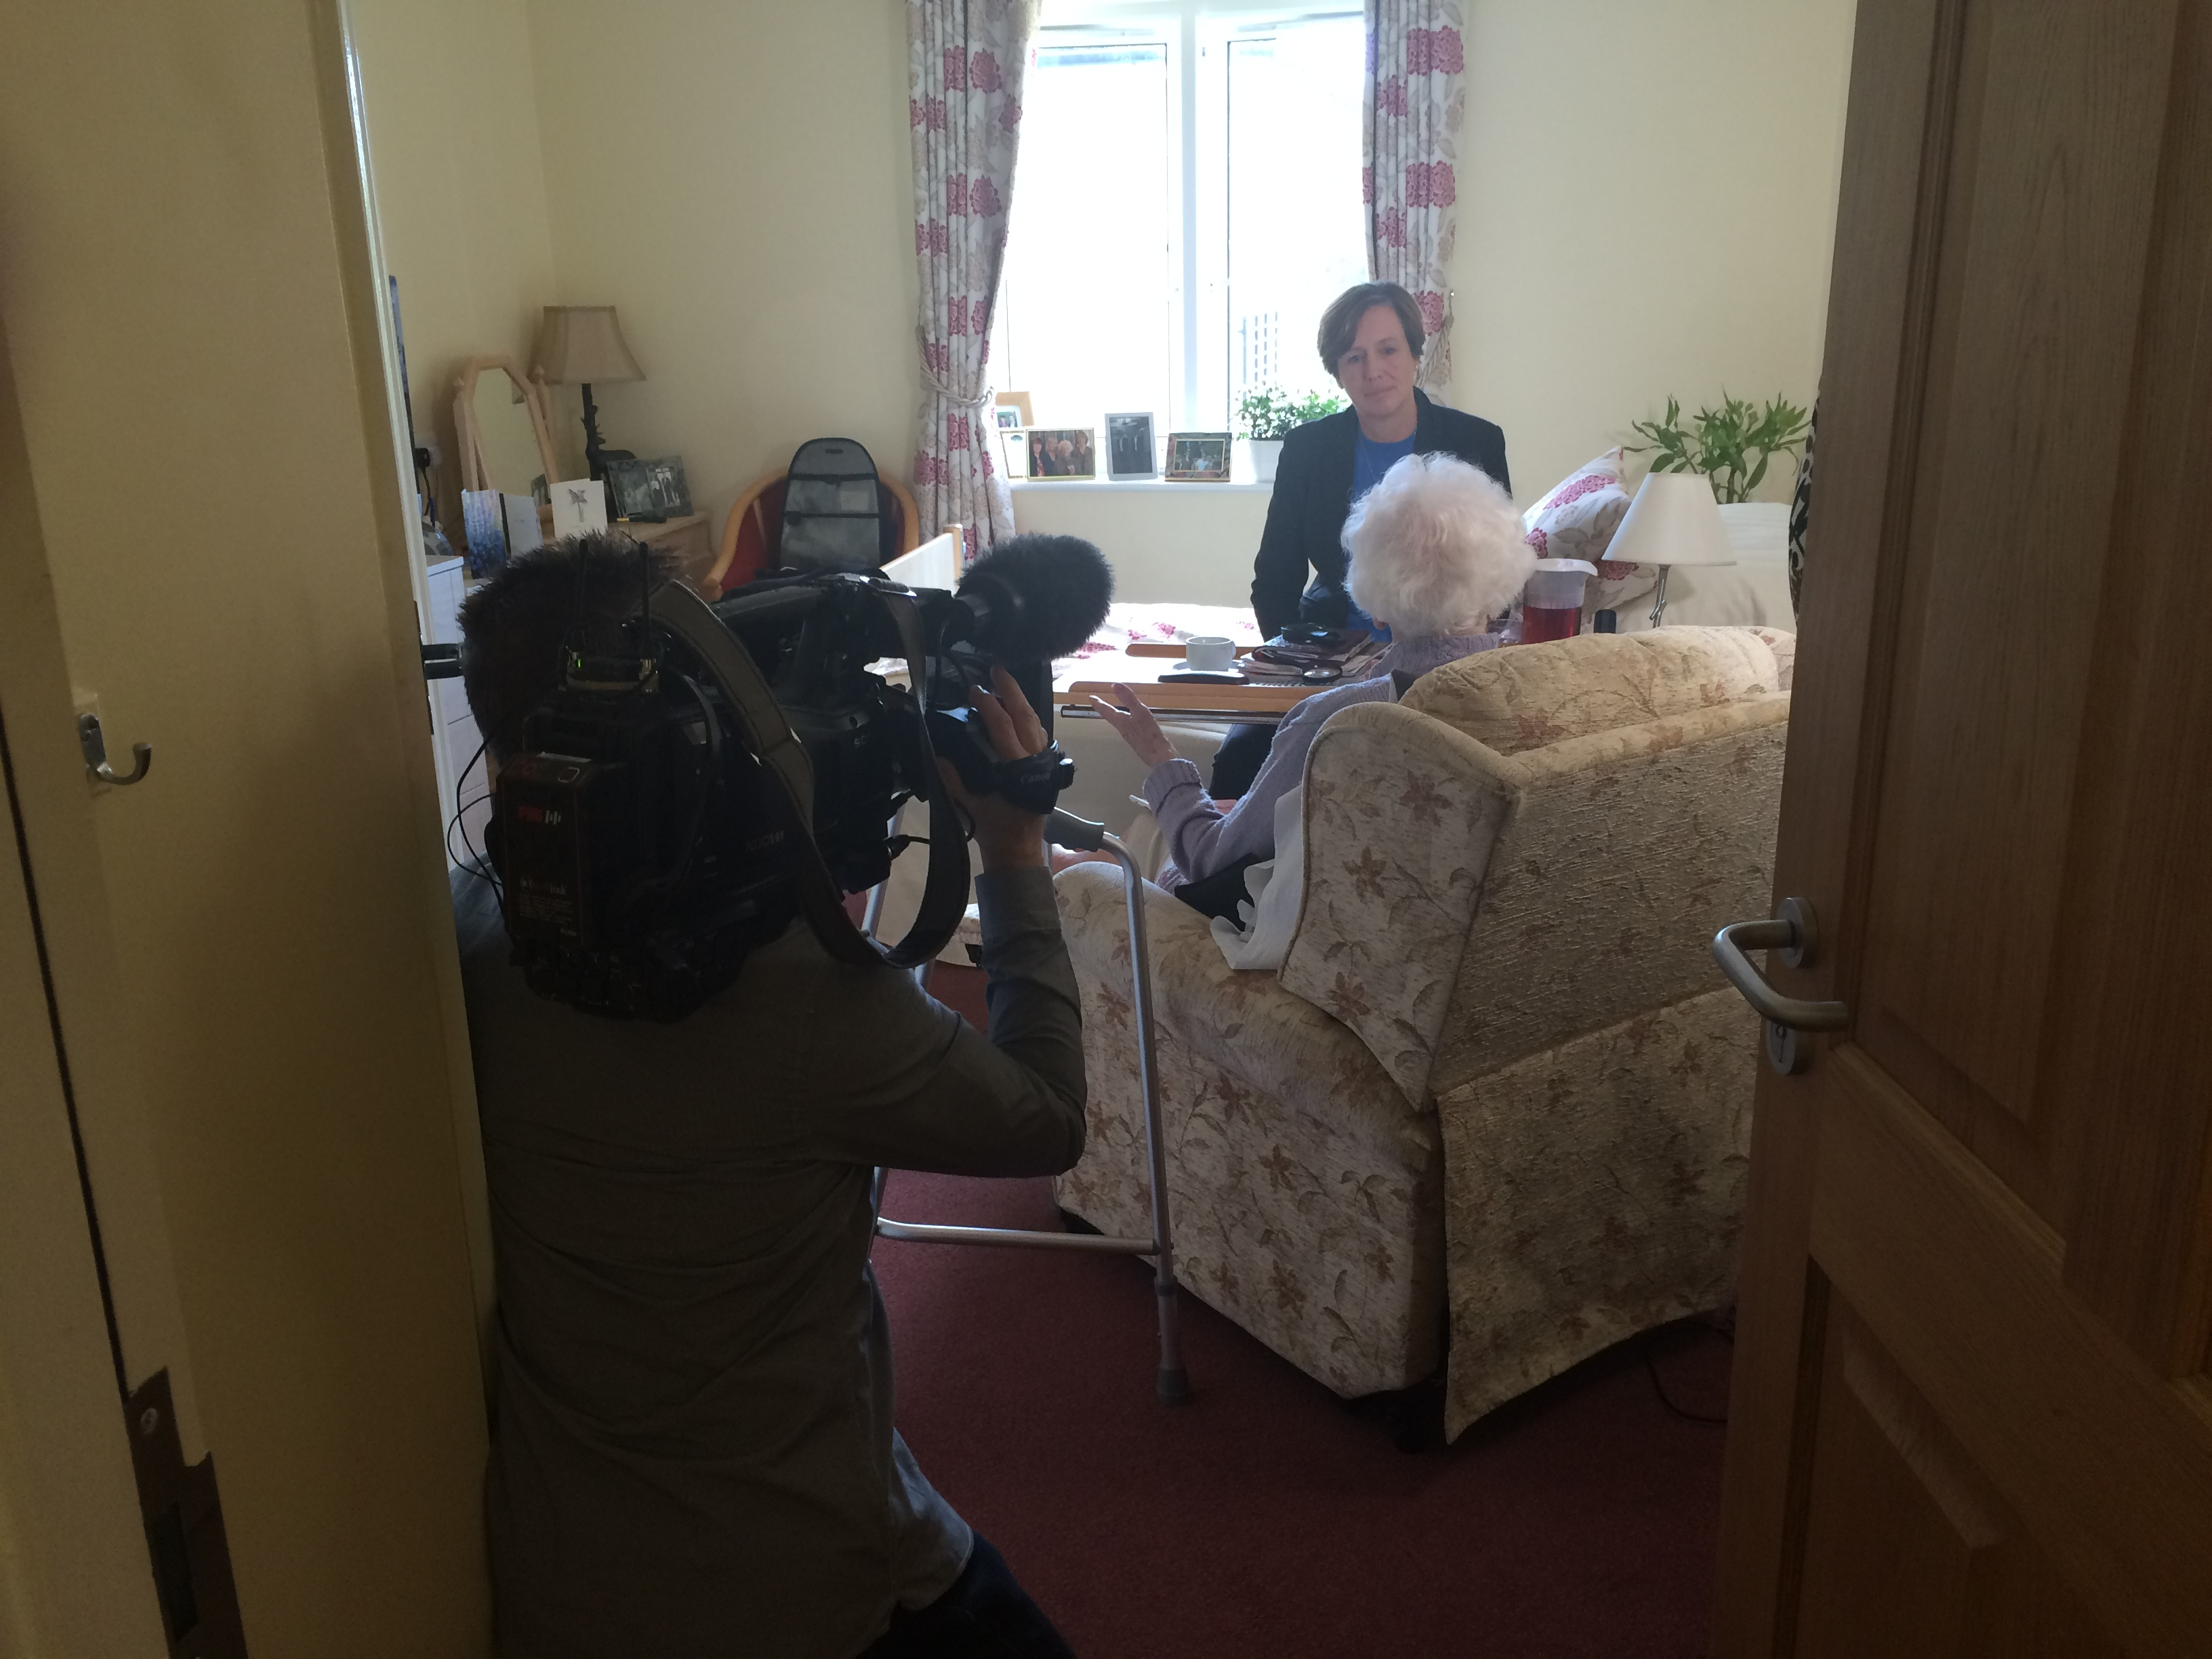 BBC interviewing MHA care home resident